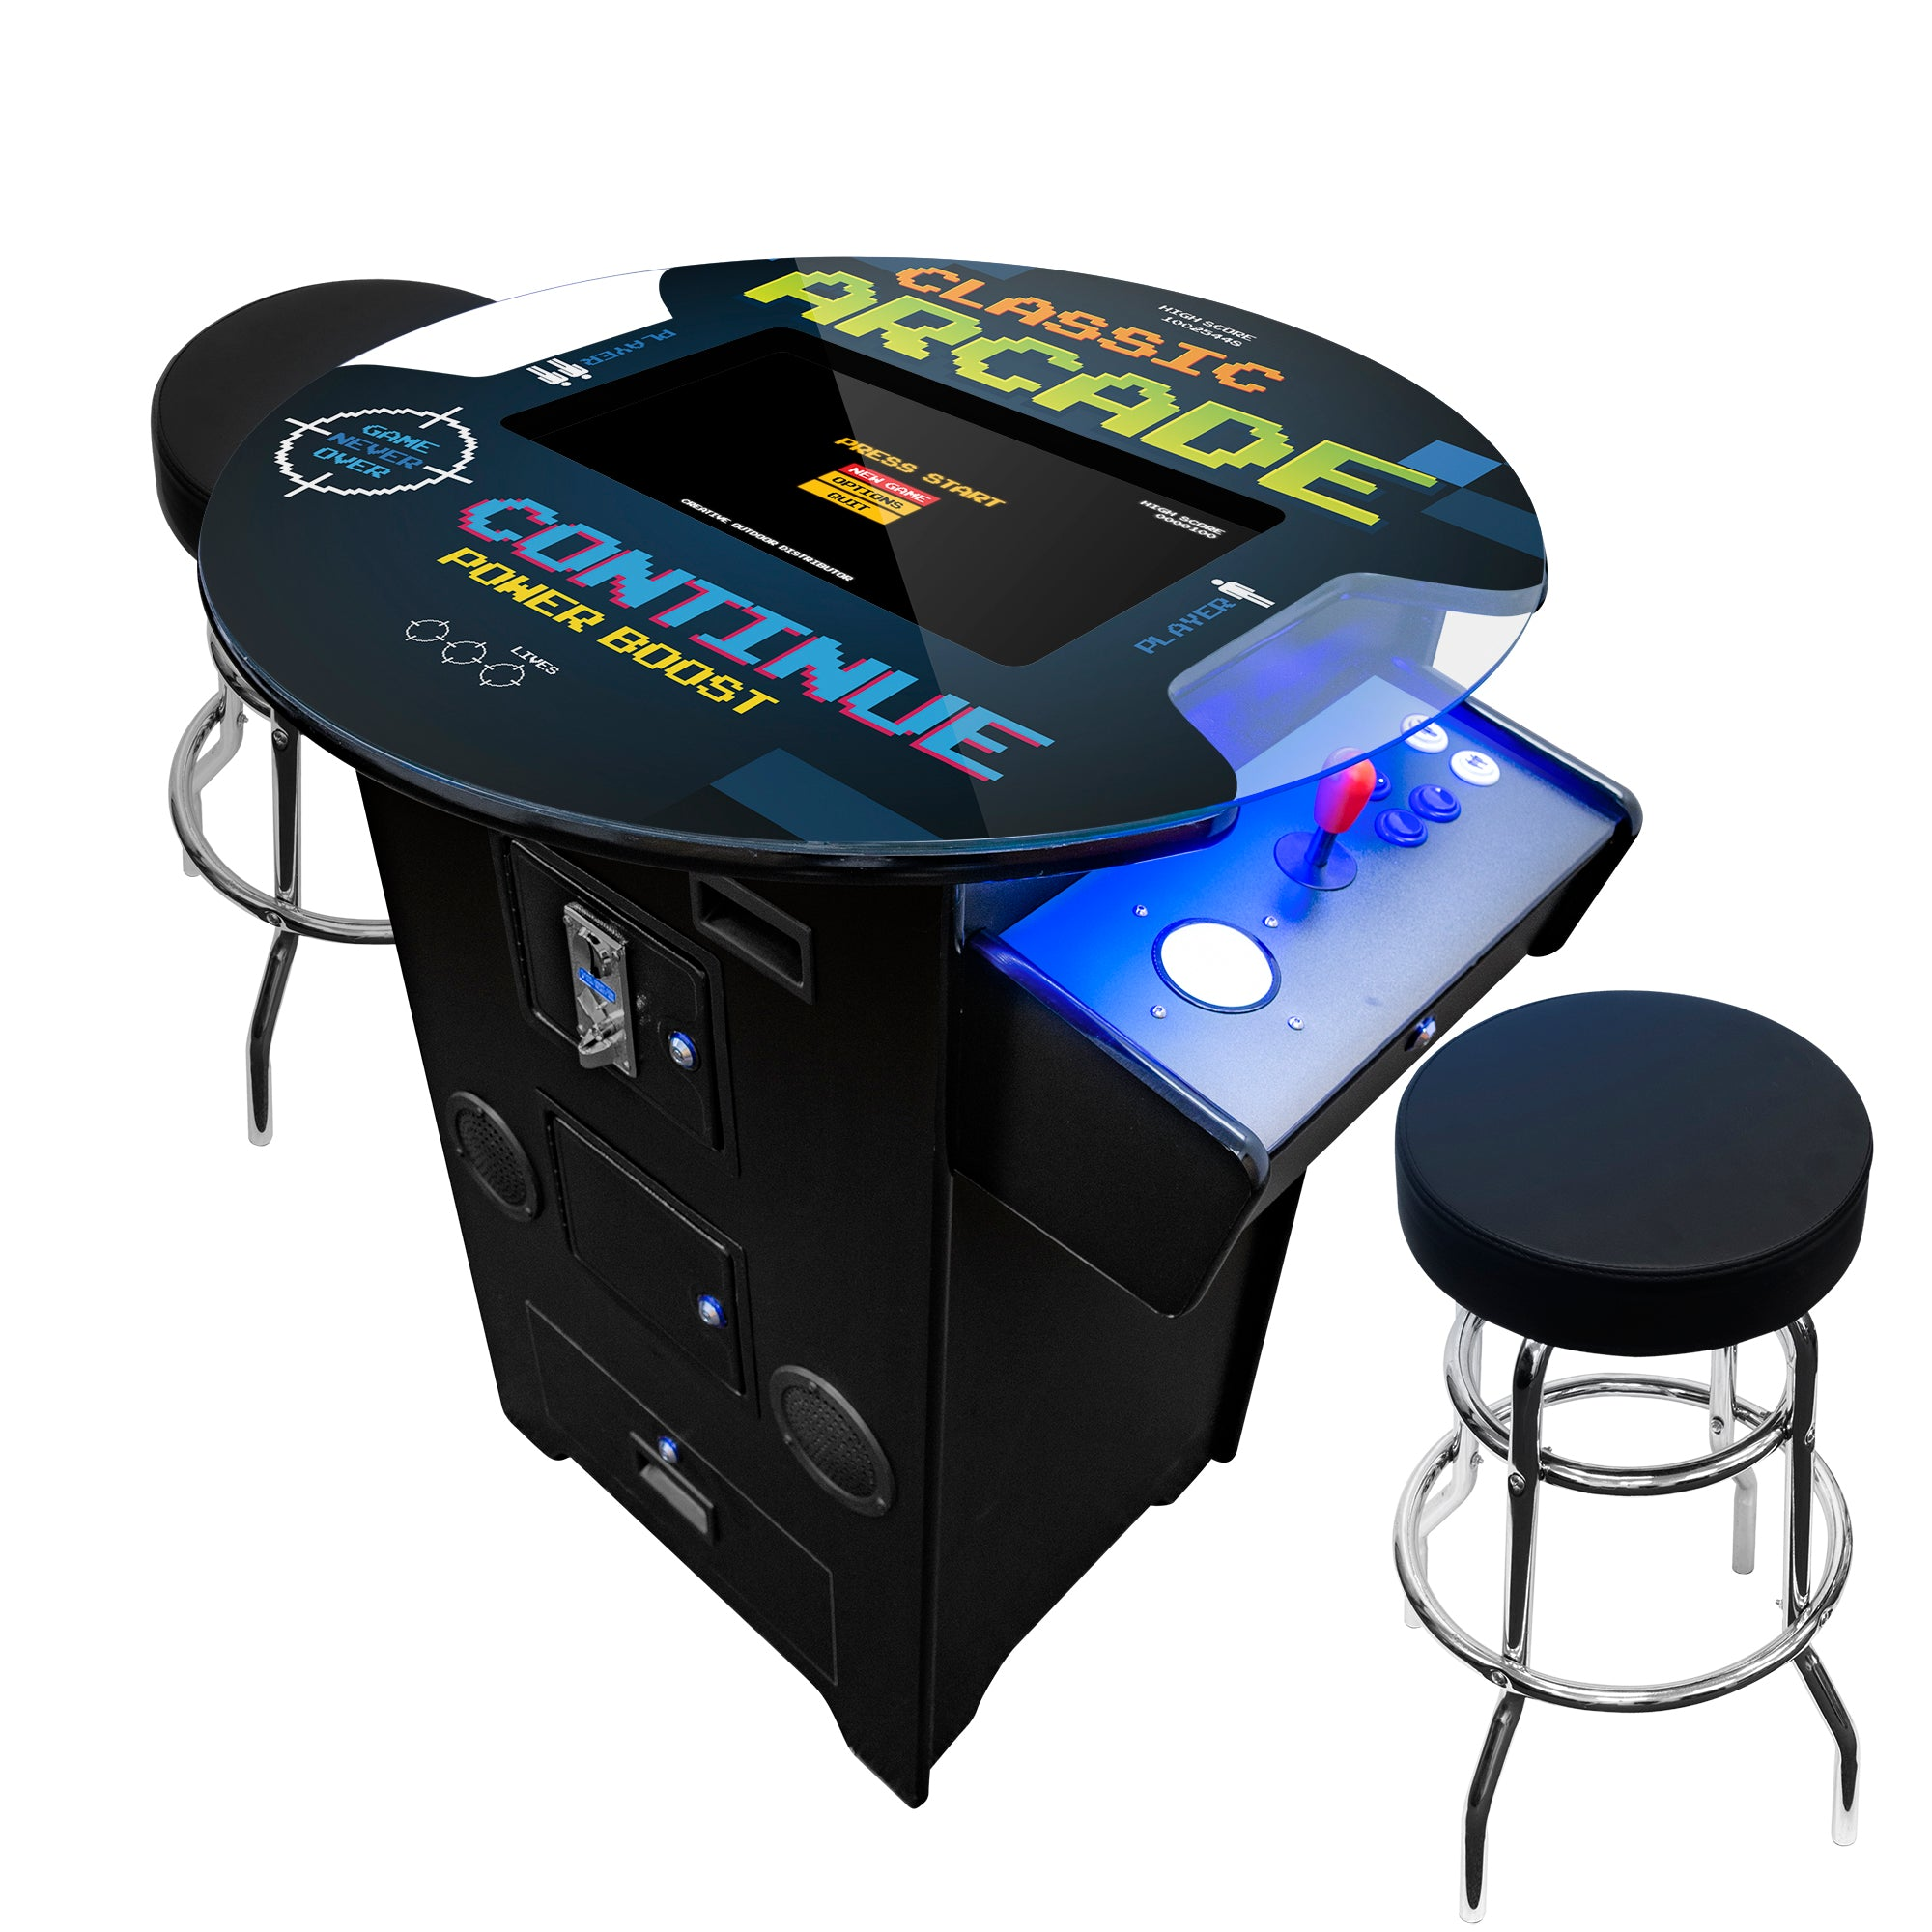 "2 Player Tall Pub Table Arcade with Trackball | 60-412 Games | 22"" LCD Monitor 